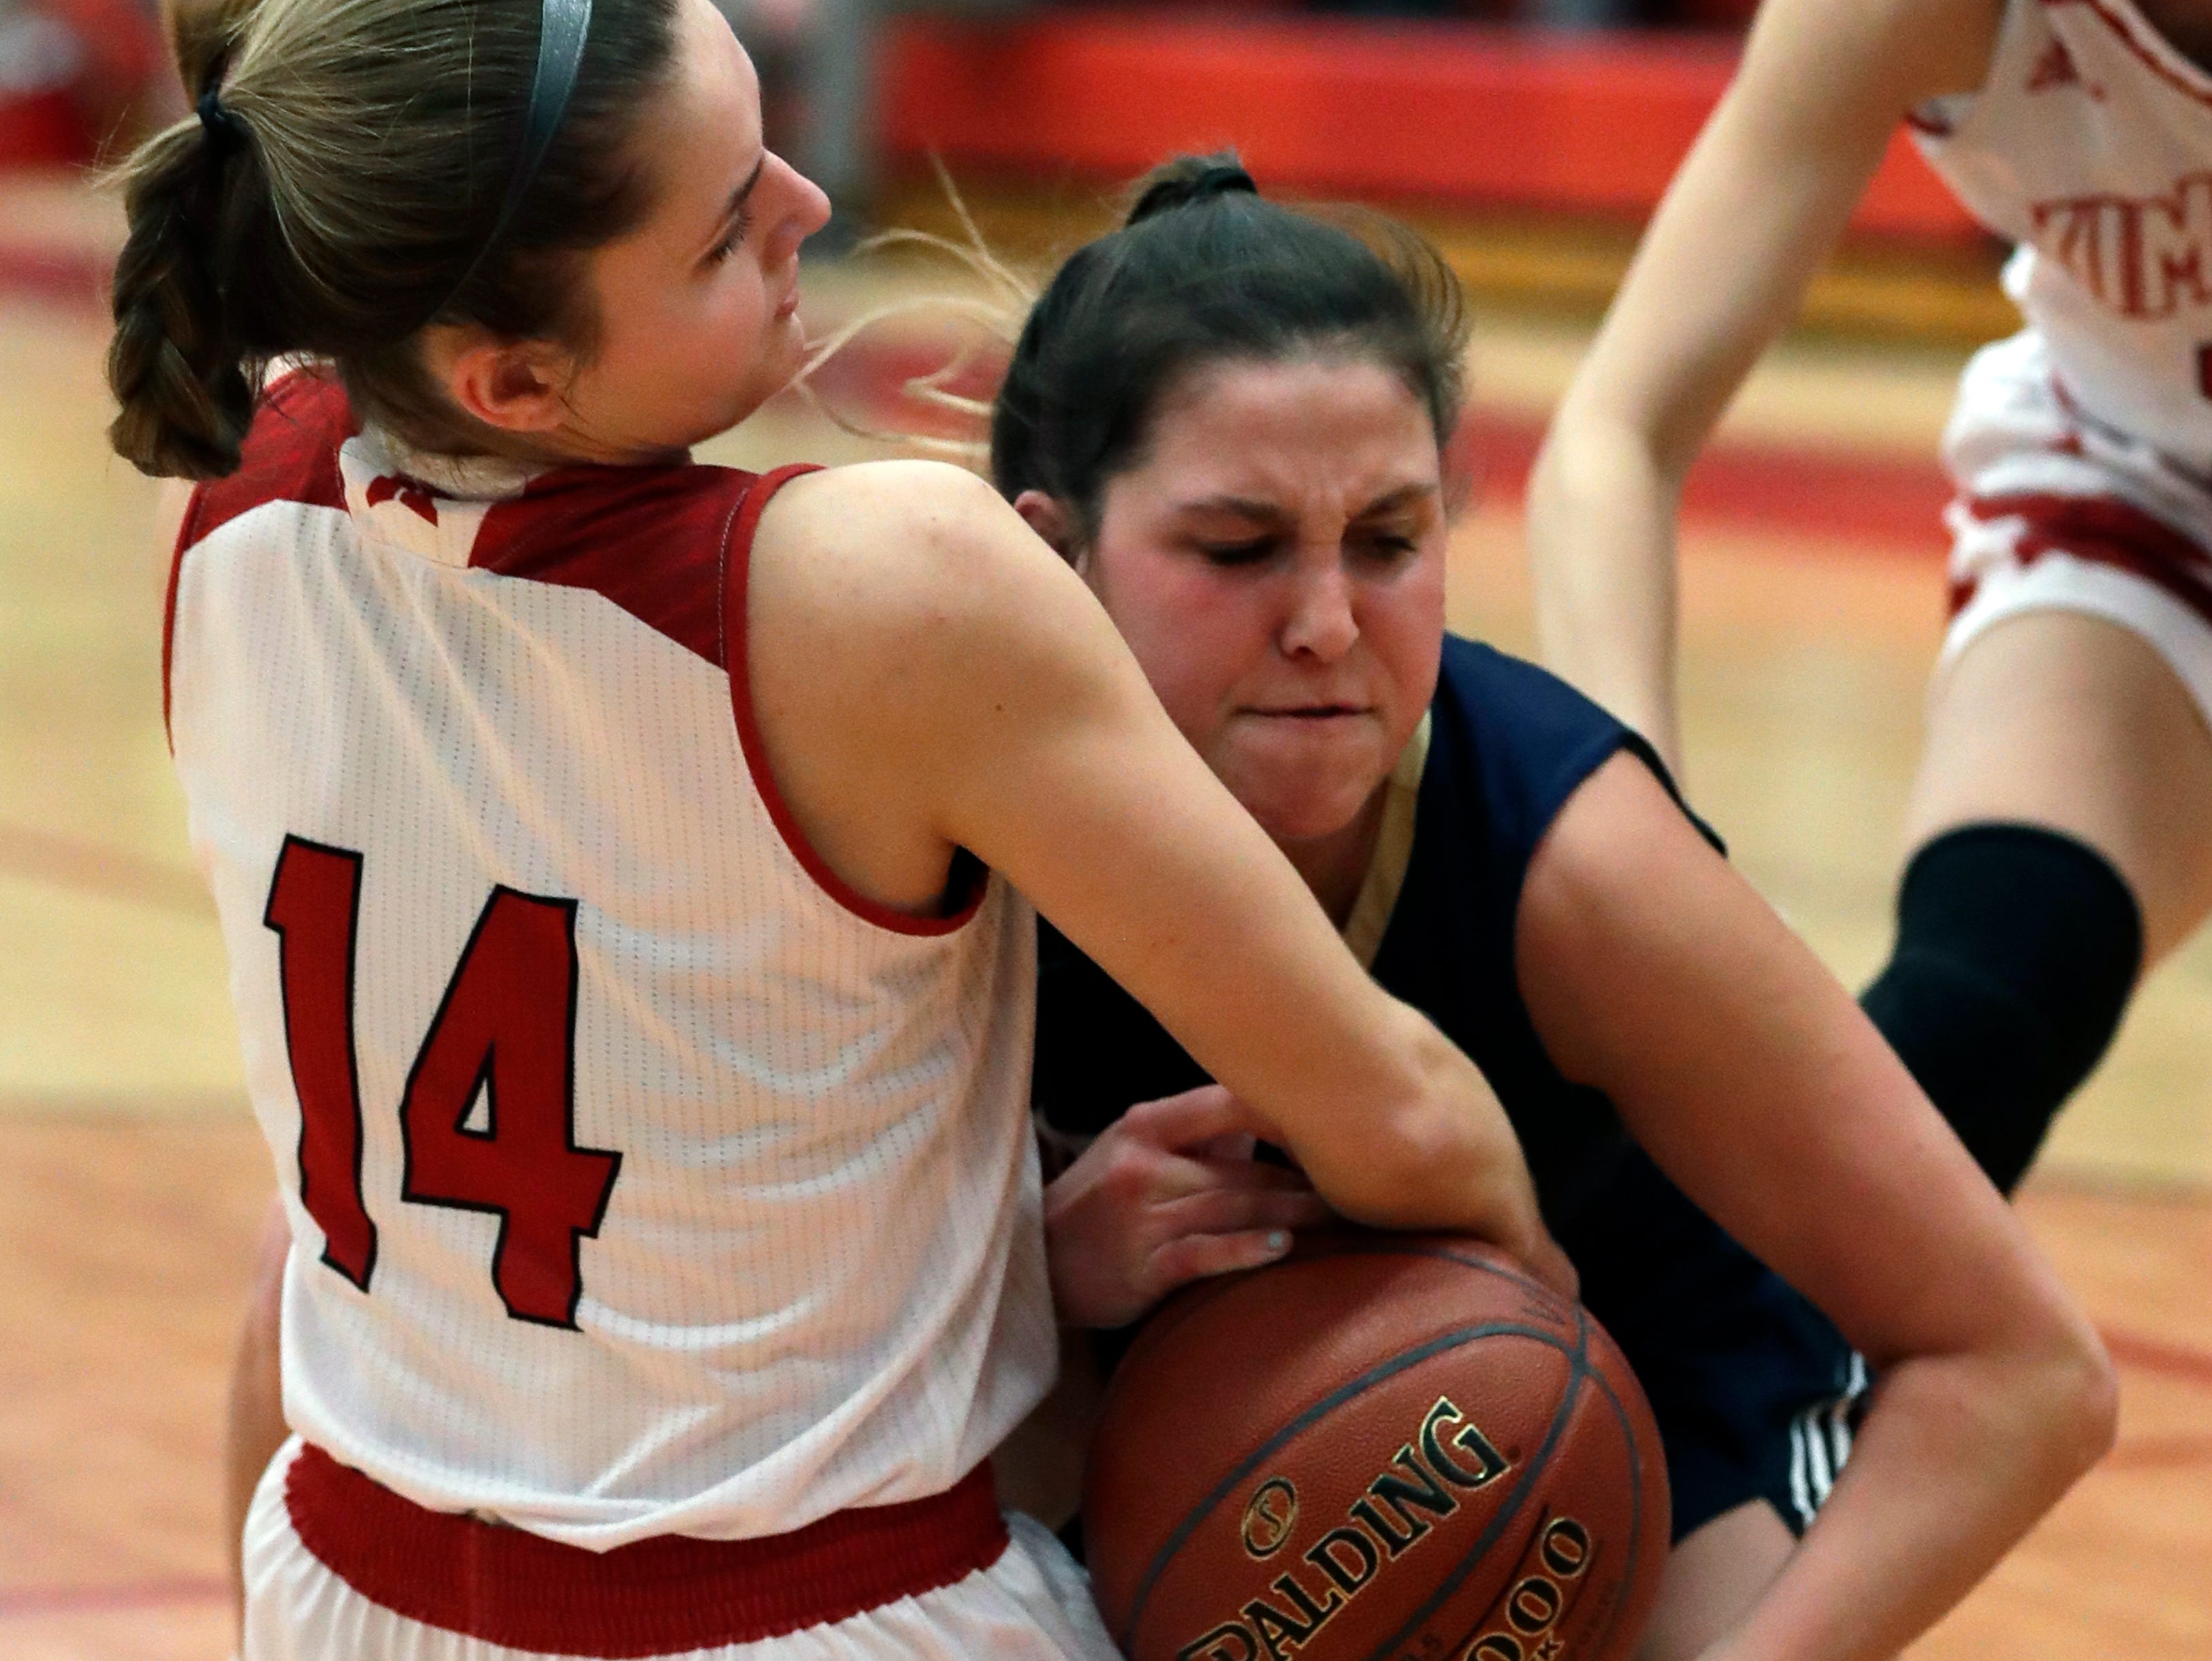 Kimberly High School's Taylor Hietpas (14) battles for a loose ball against Appleton North High School's Paige Schabo (23) during their girls basketball game Monday, February 11, 2019, in Kimberly, Wis. Dan Powers/USA TODAY NETWORK-Wisconsin